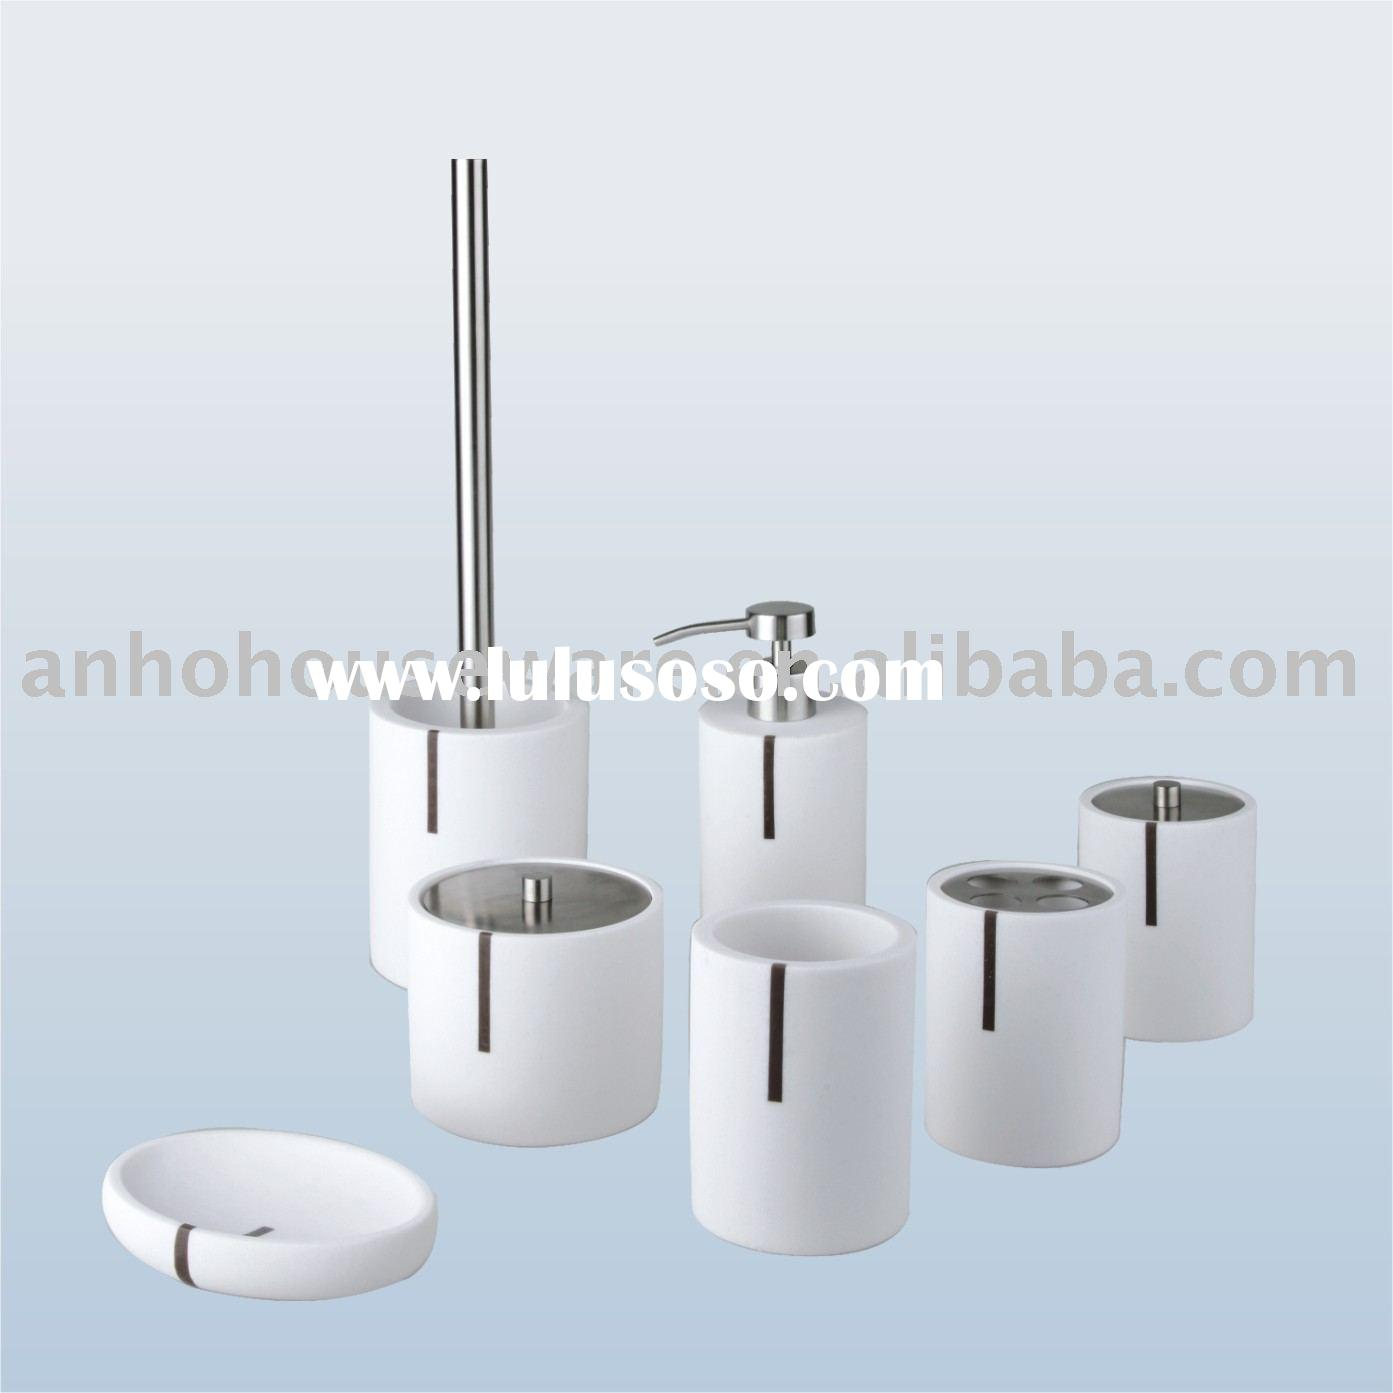 Bath Set (Bath Product, Bathroom Set, Bath Accessories,Shower Accessories)